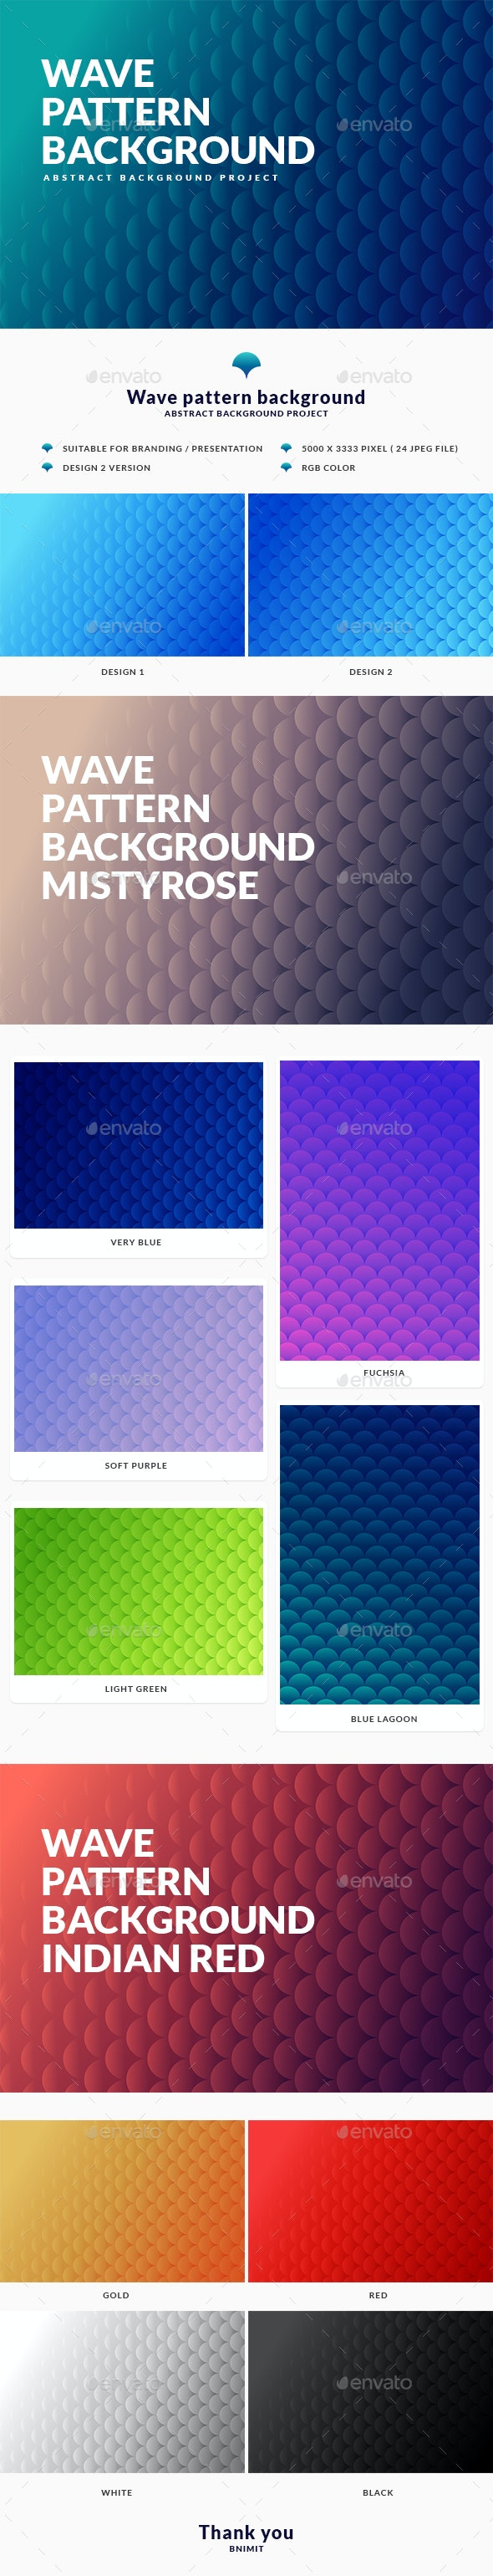 Wave Pattern Background - Business Backgrounds